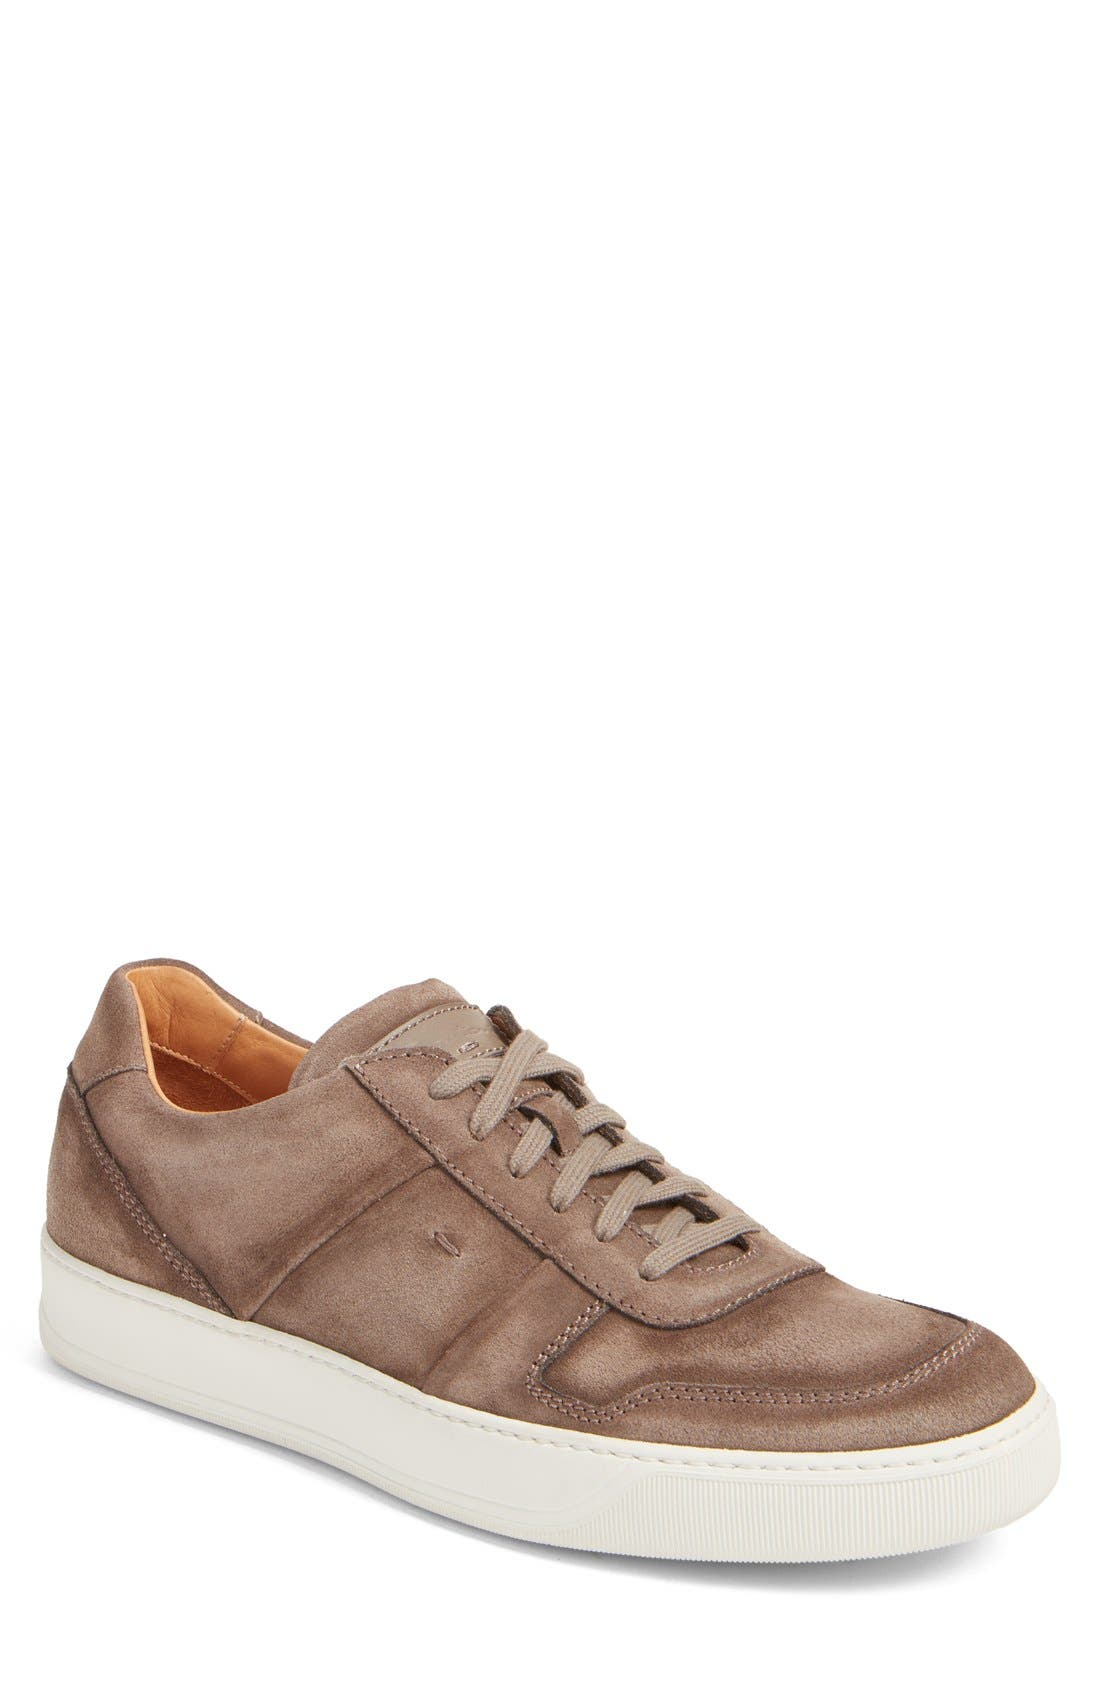 SANTONI 'Birch Low' Sneaker